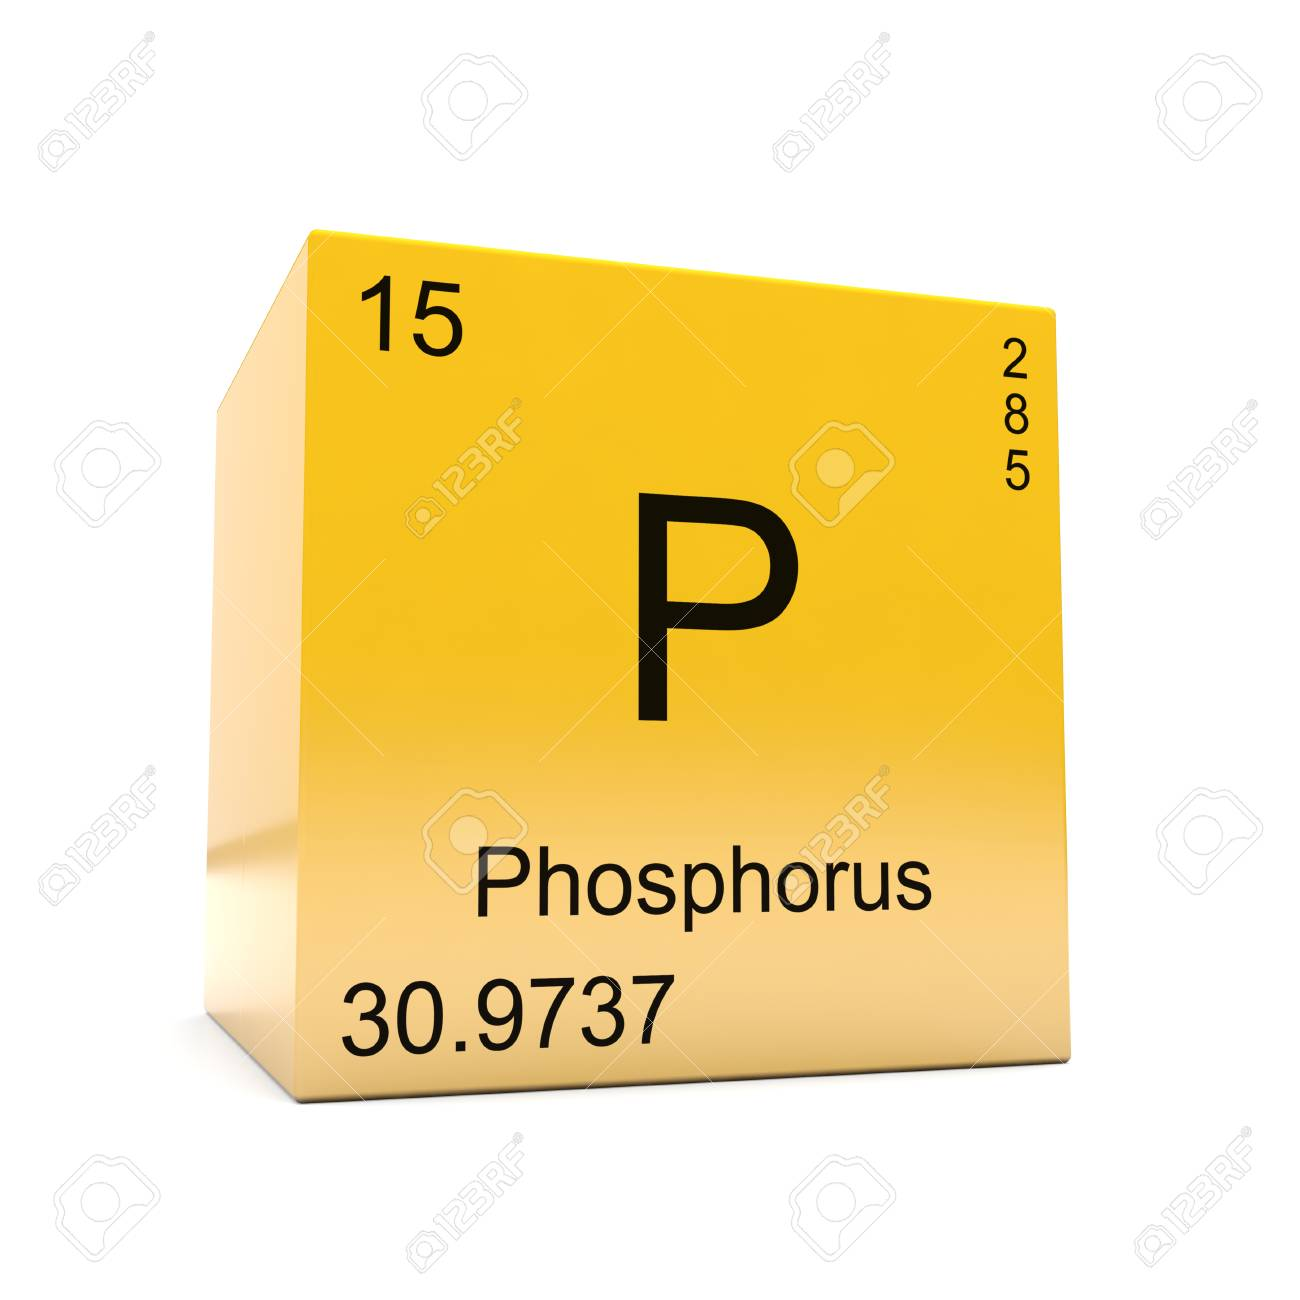 Phosphorus chemical element symbol from the periodic table displayed phosphorus chemical element symbol from the periodic table displayed on glossy yellow cube stock photo urtaz Image collections